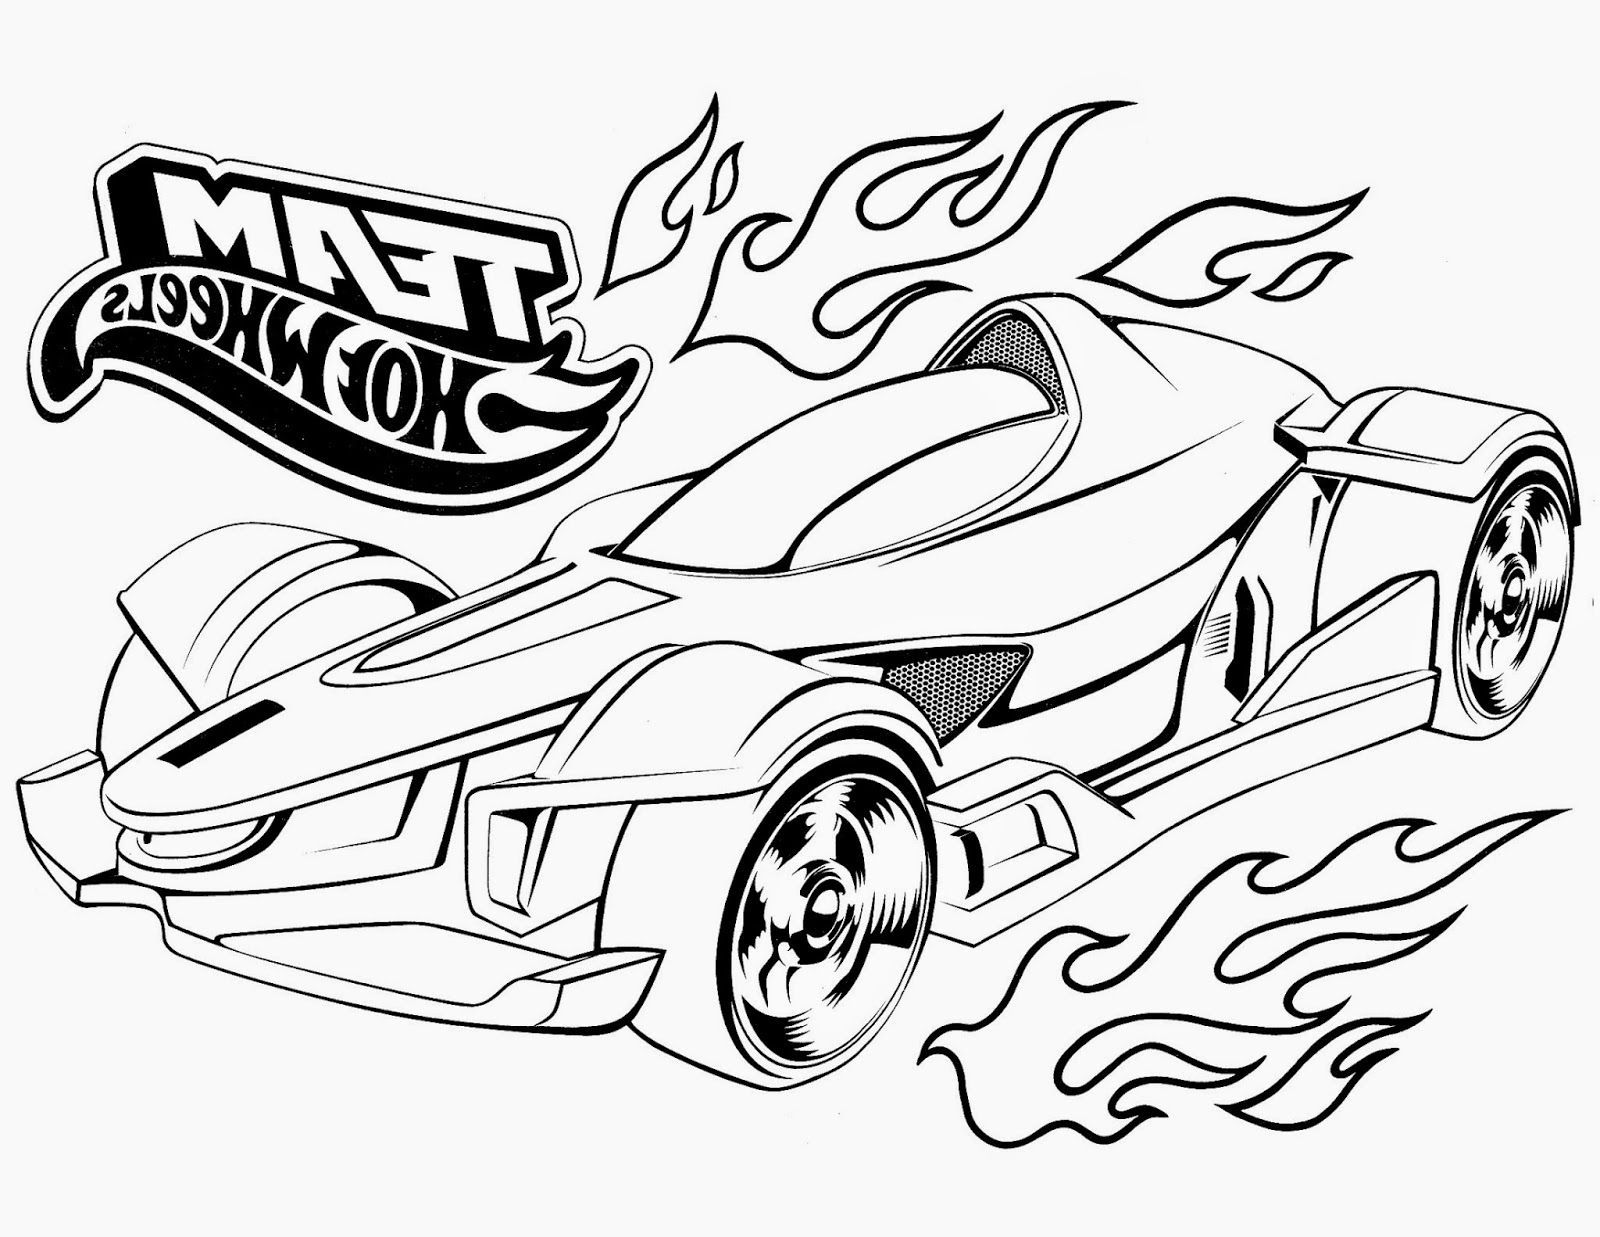 Hot Wheels Coloring Pages Cars Coloring Pages Monster Truck Coloring Pages Coloring Pages